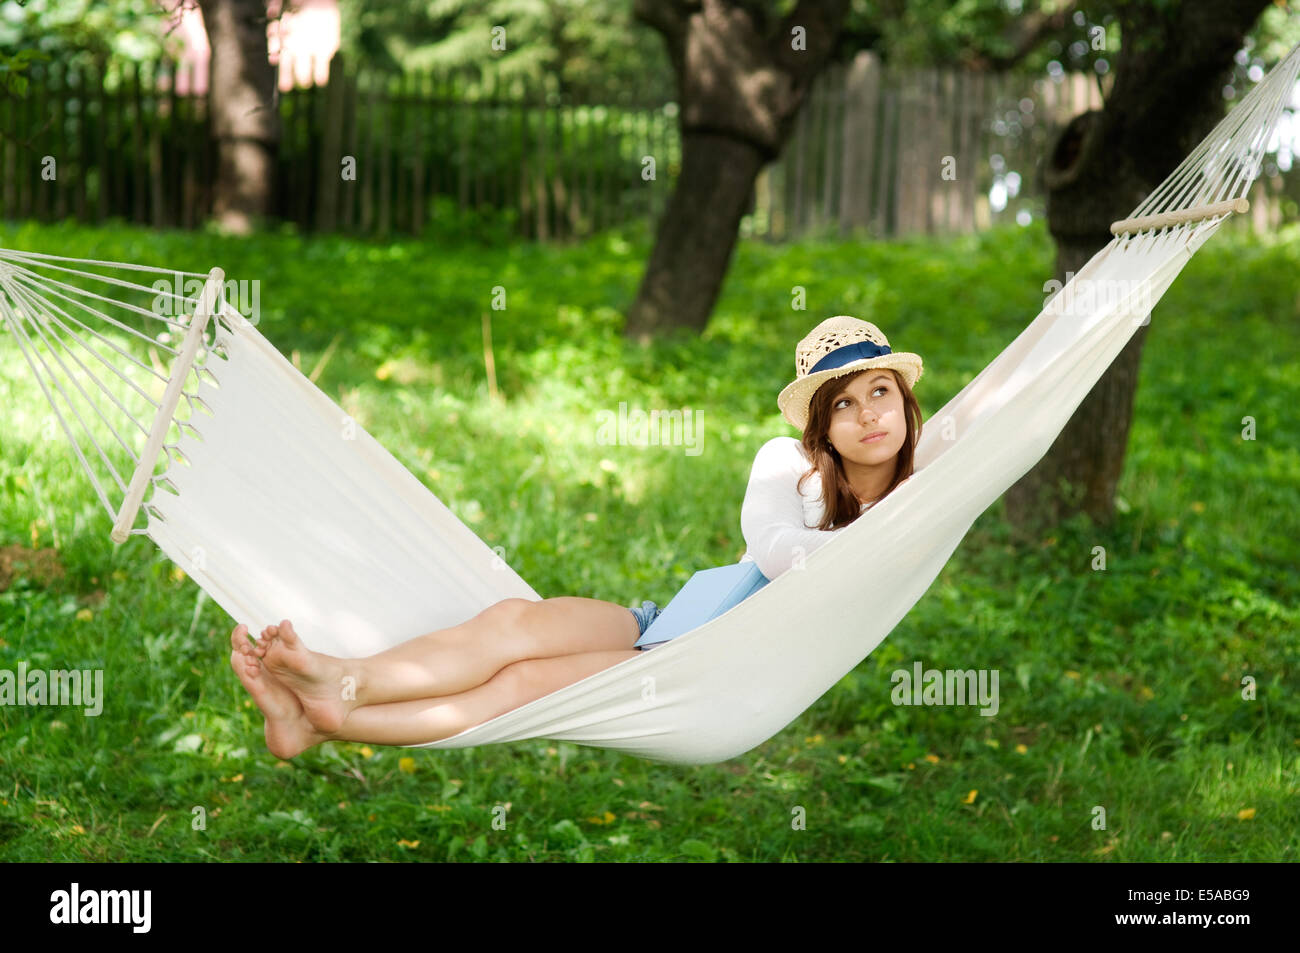 Young woman lying down on hammock, Debica, Poland. - Stock Image